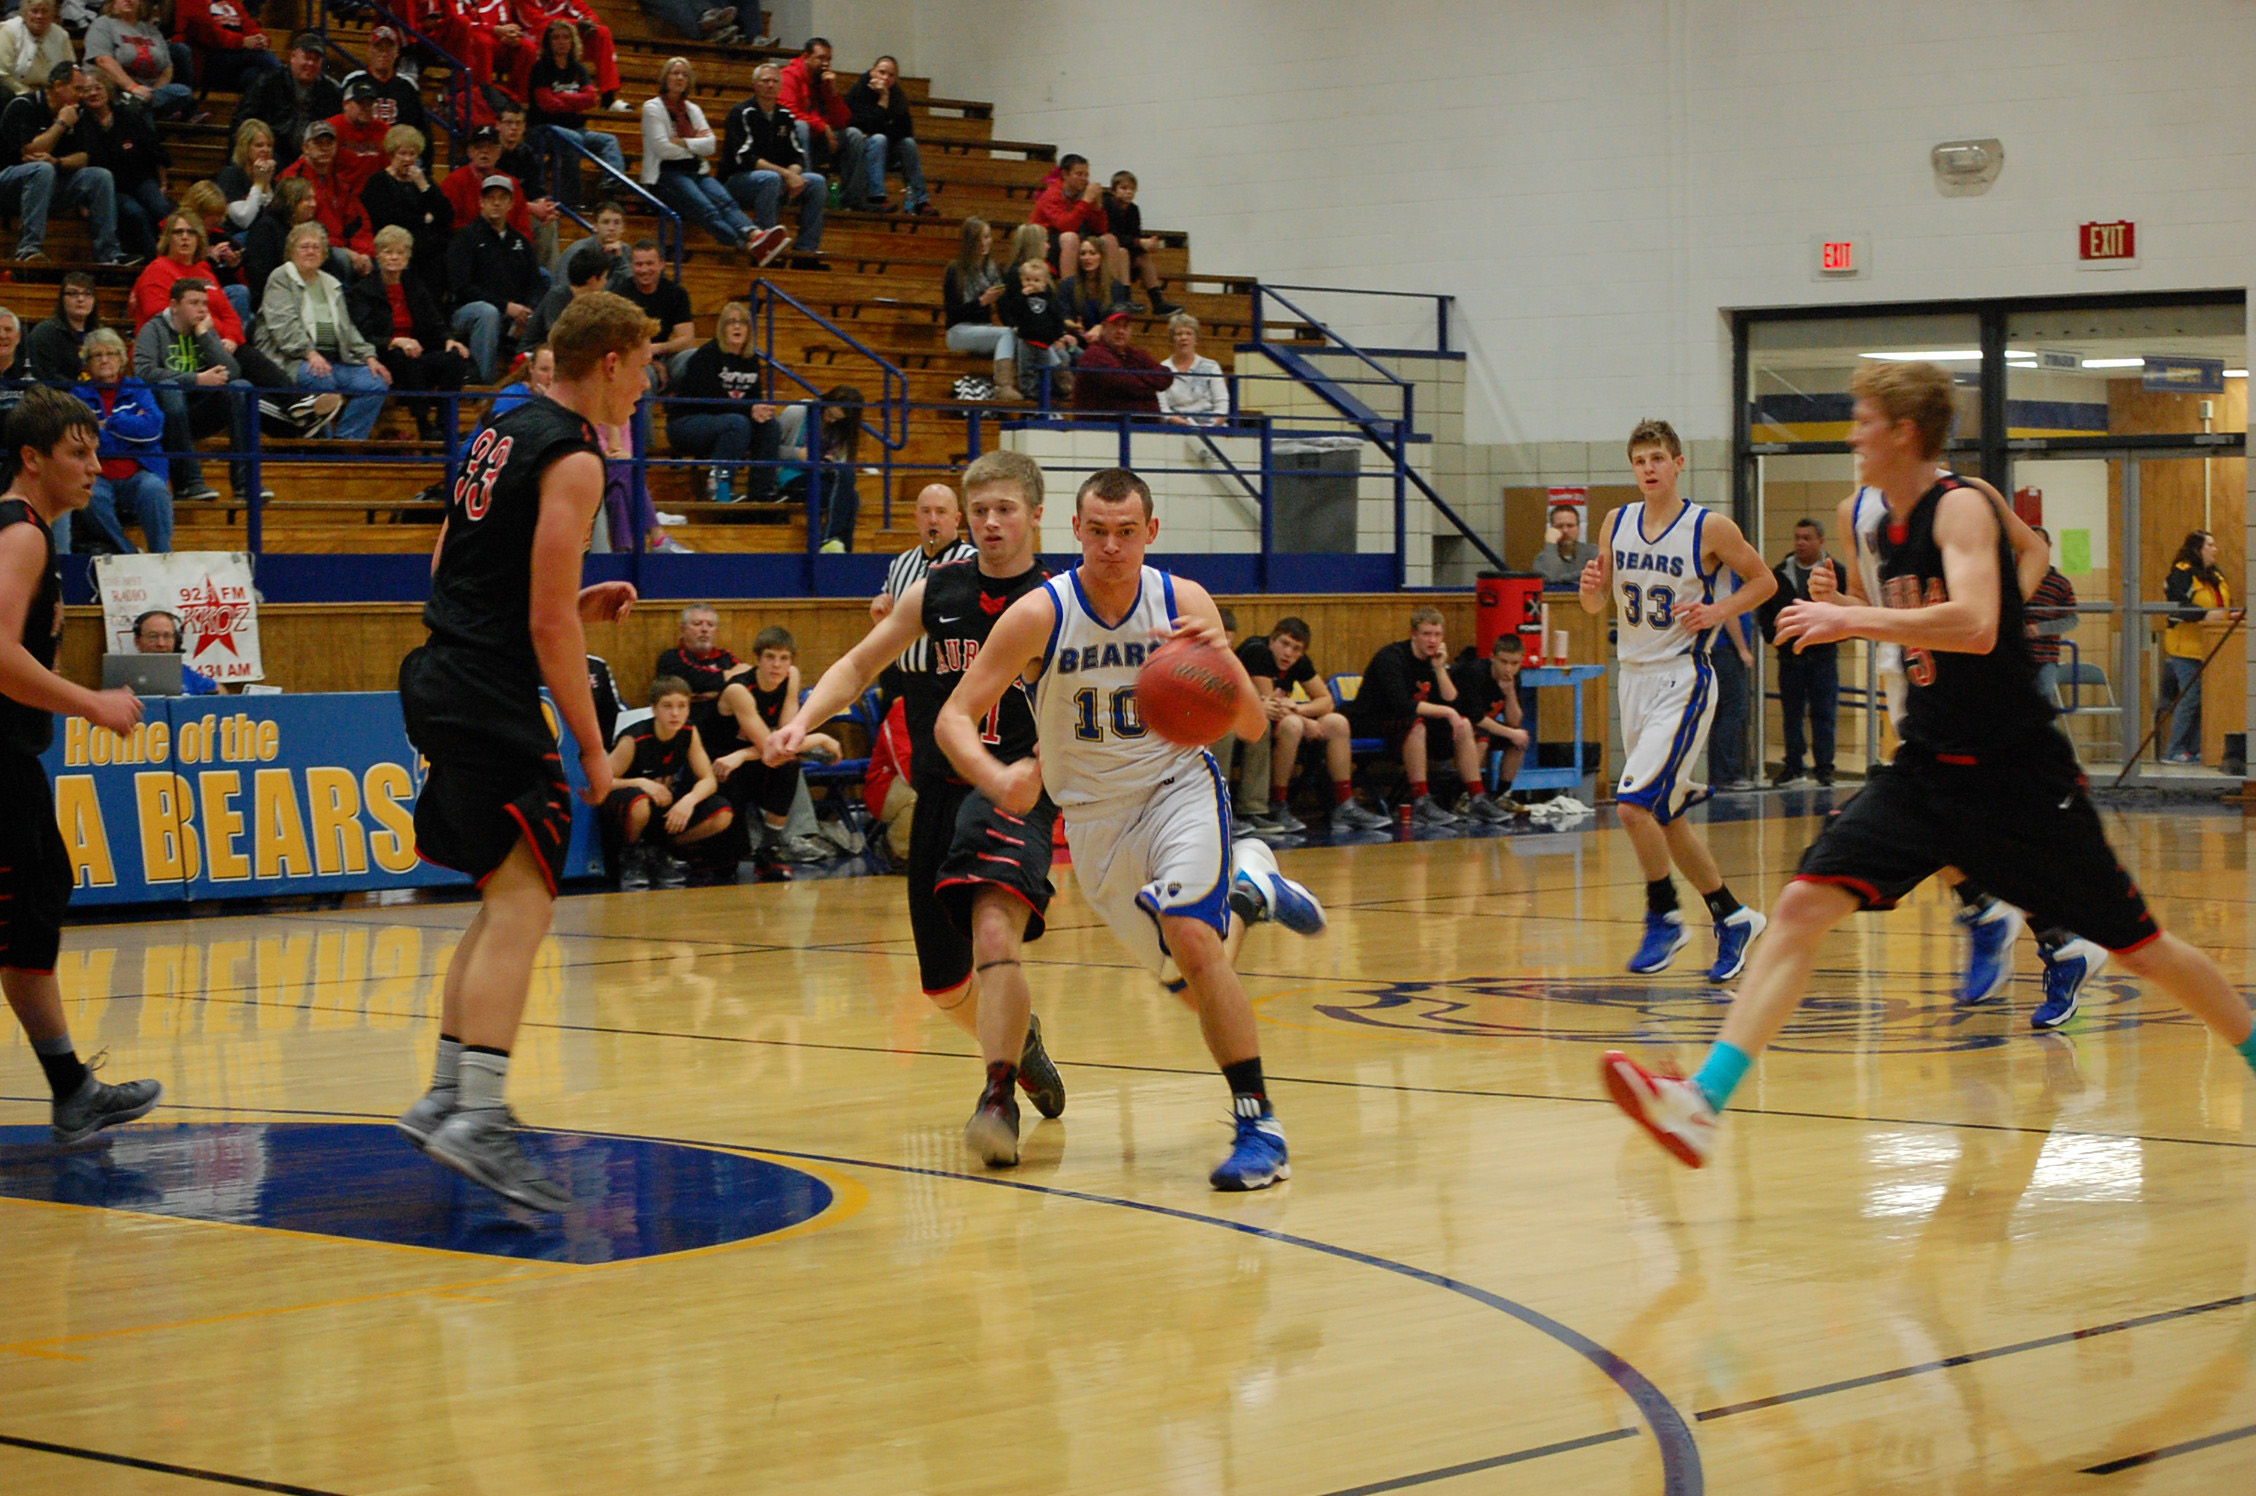 Ben Loge dribbles past an Aurora defender in the varsity game here Saturday. At far right for Ava is Brandon Guengerich (33).